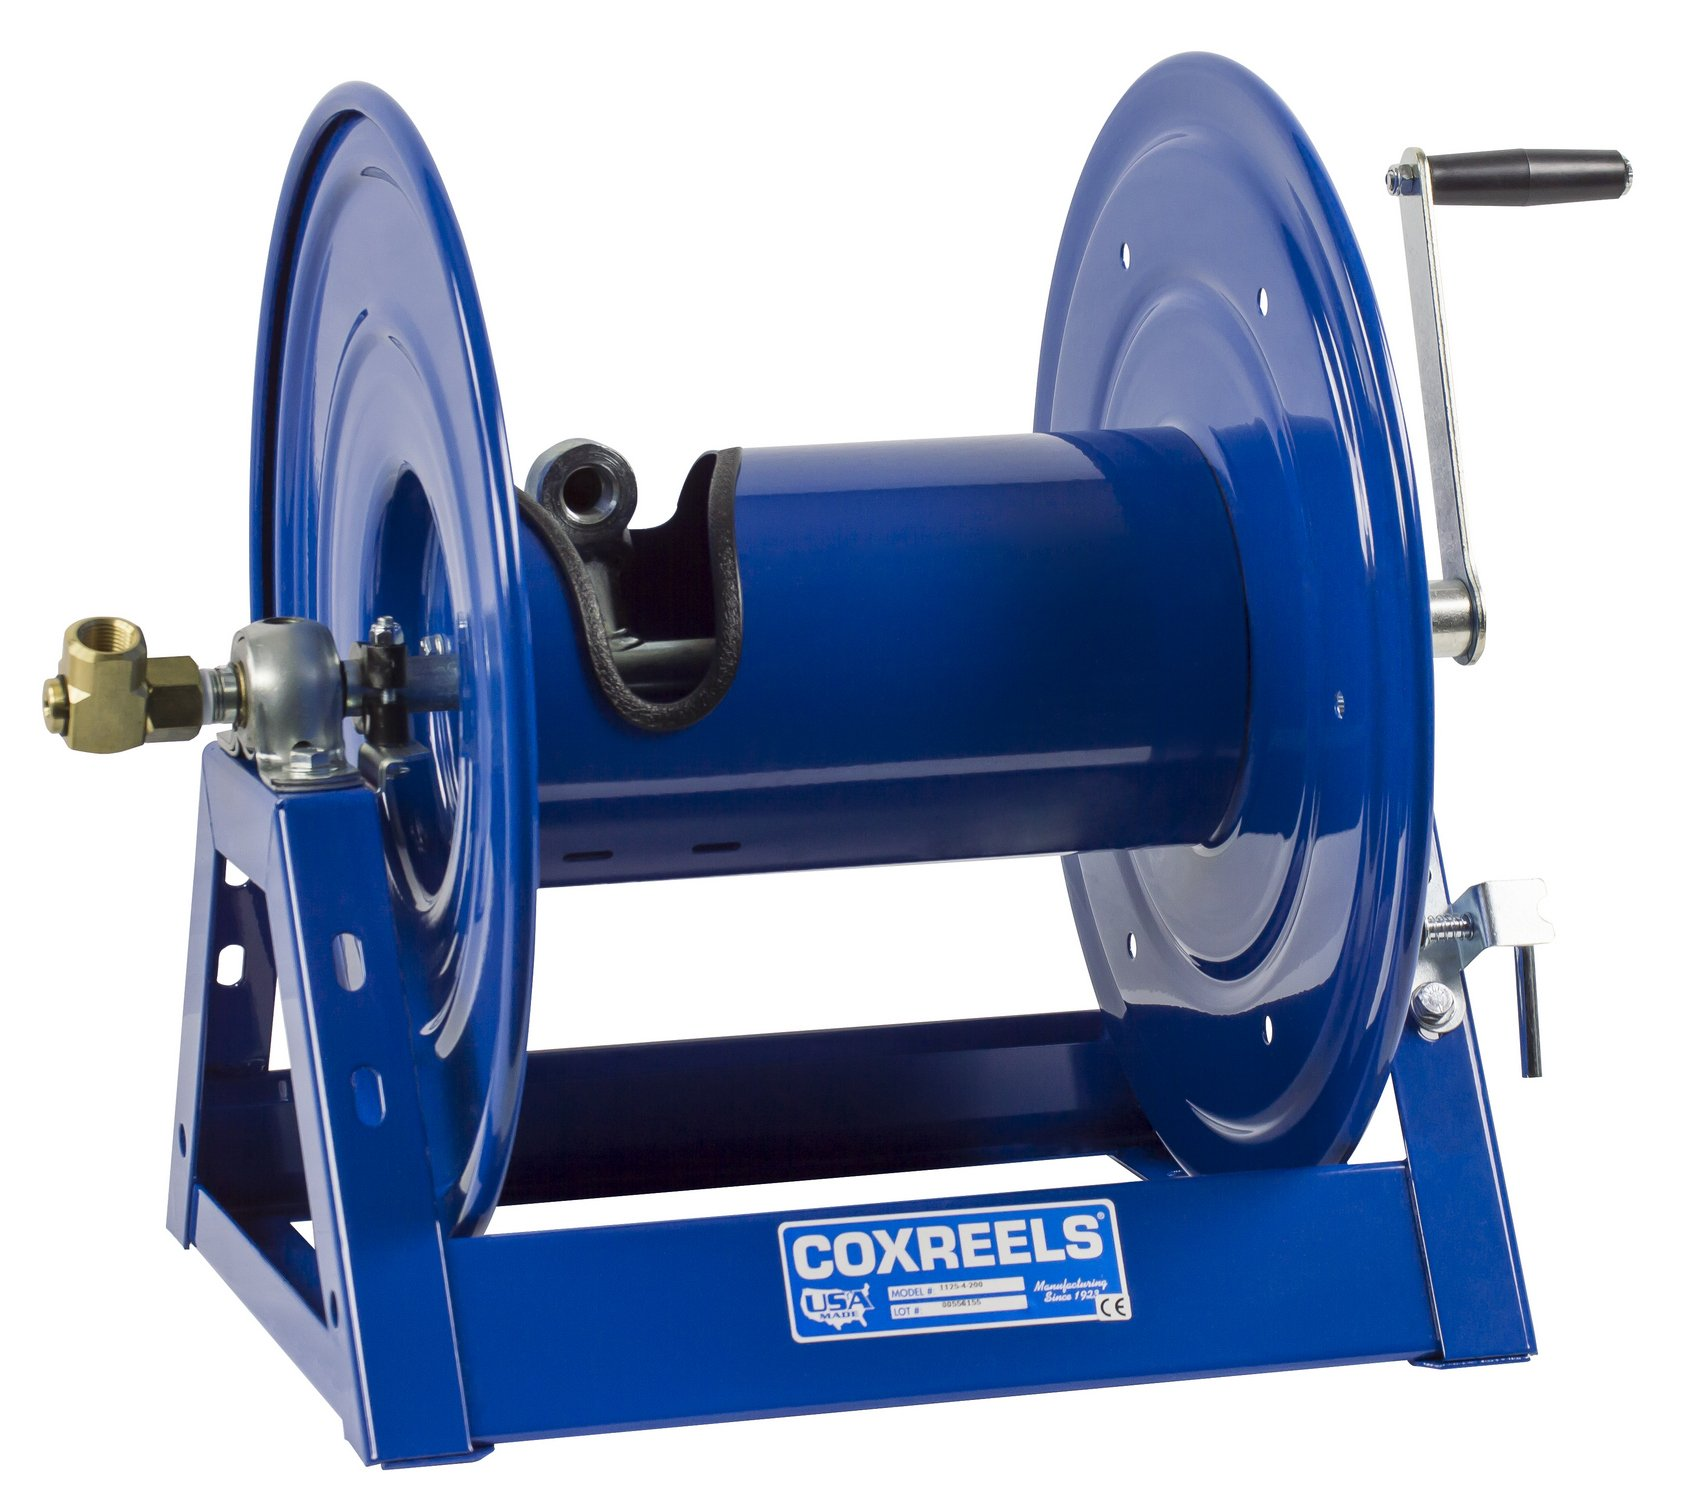 Coxreels 1125-4-100 Steel Hand Crank Hose Reel, 1/2'' Hose I.D., 100' Hose Capacity, 3,000 PSI, without Hose, Made in USA